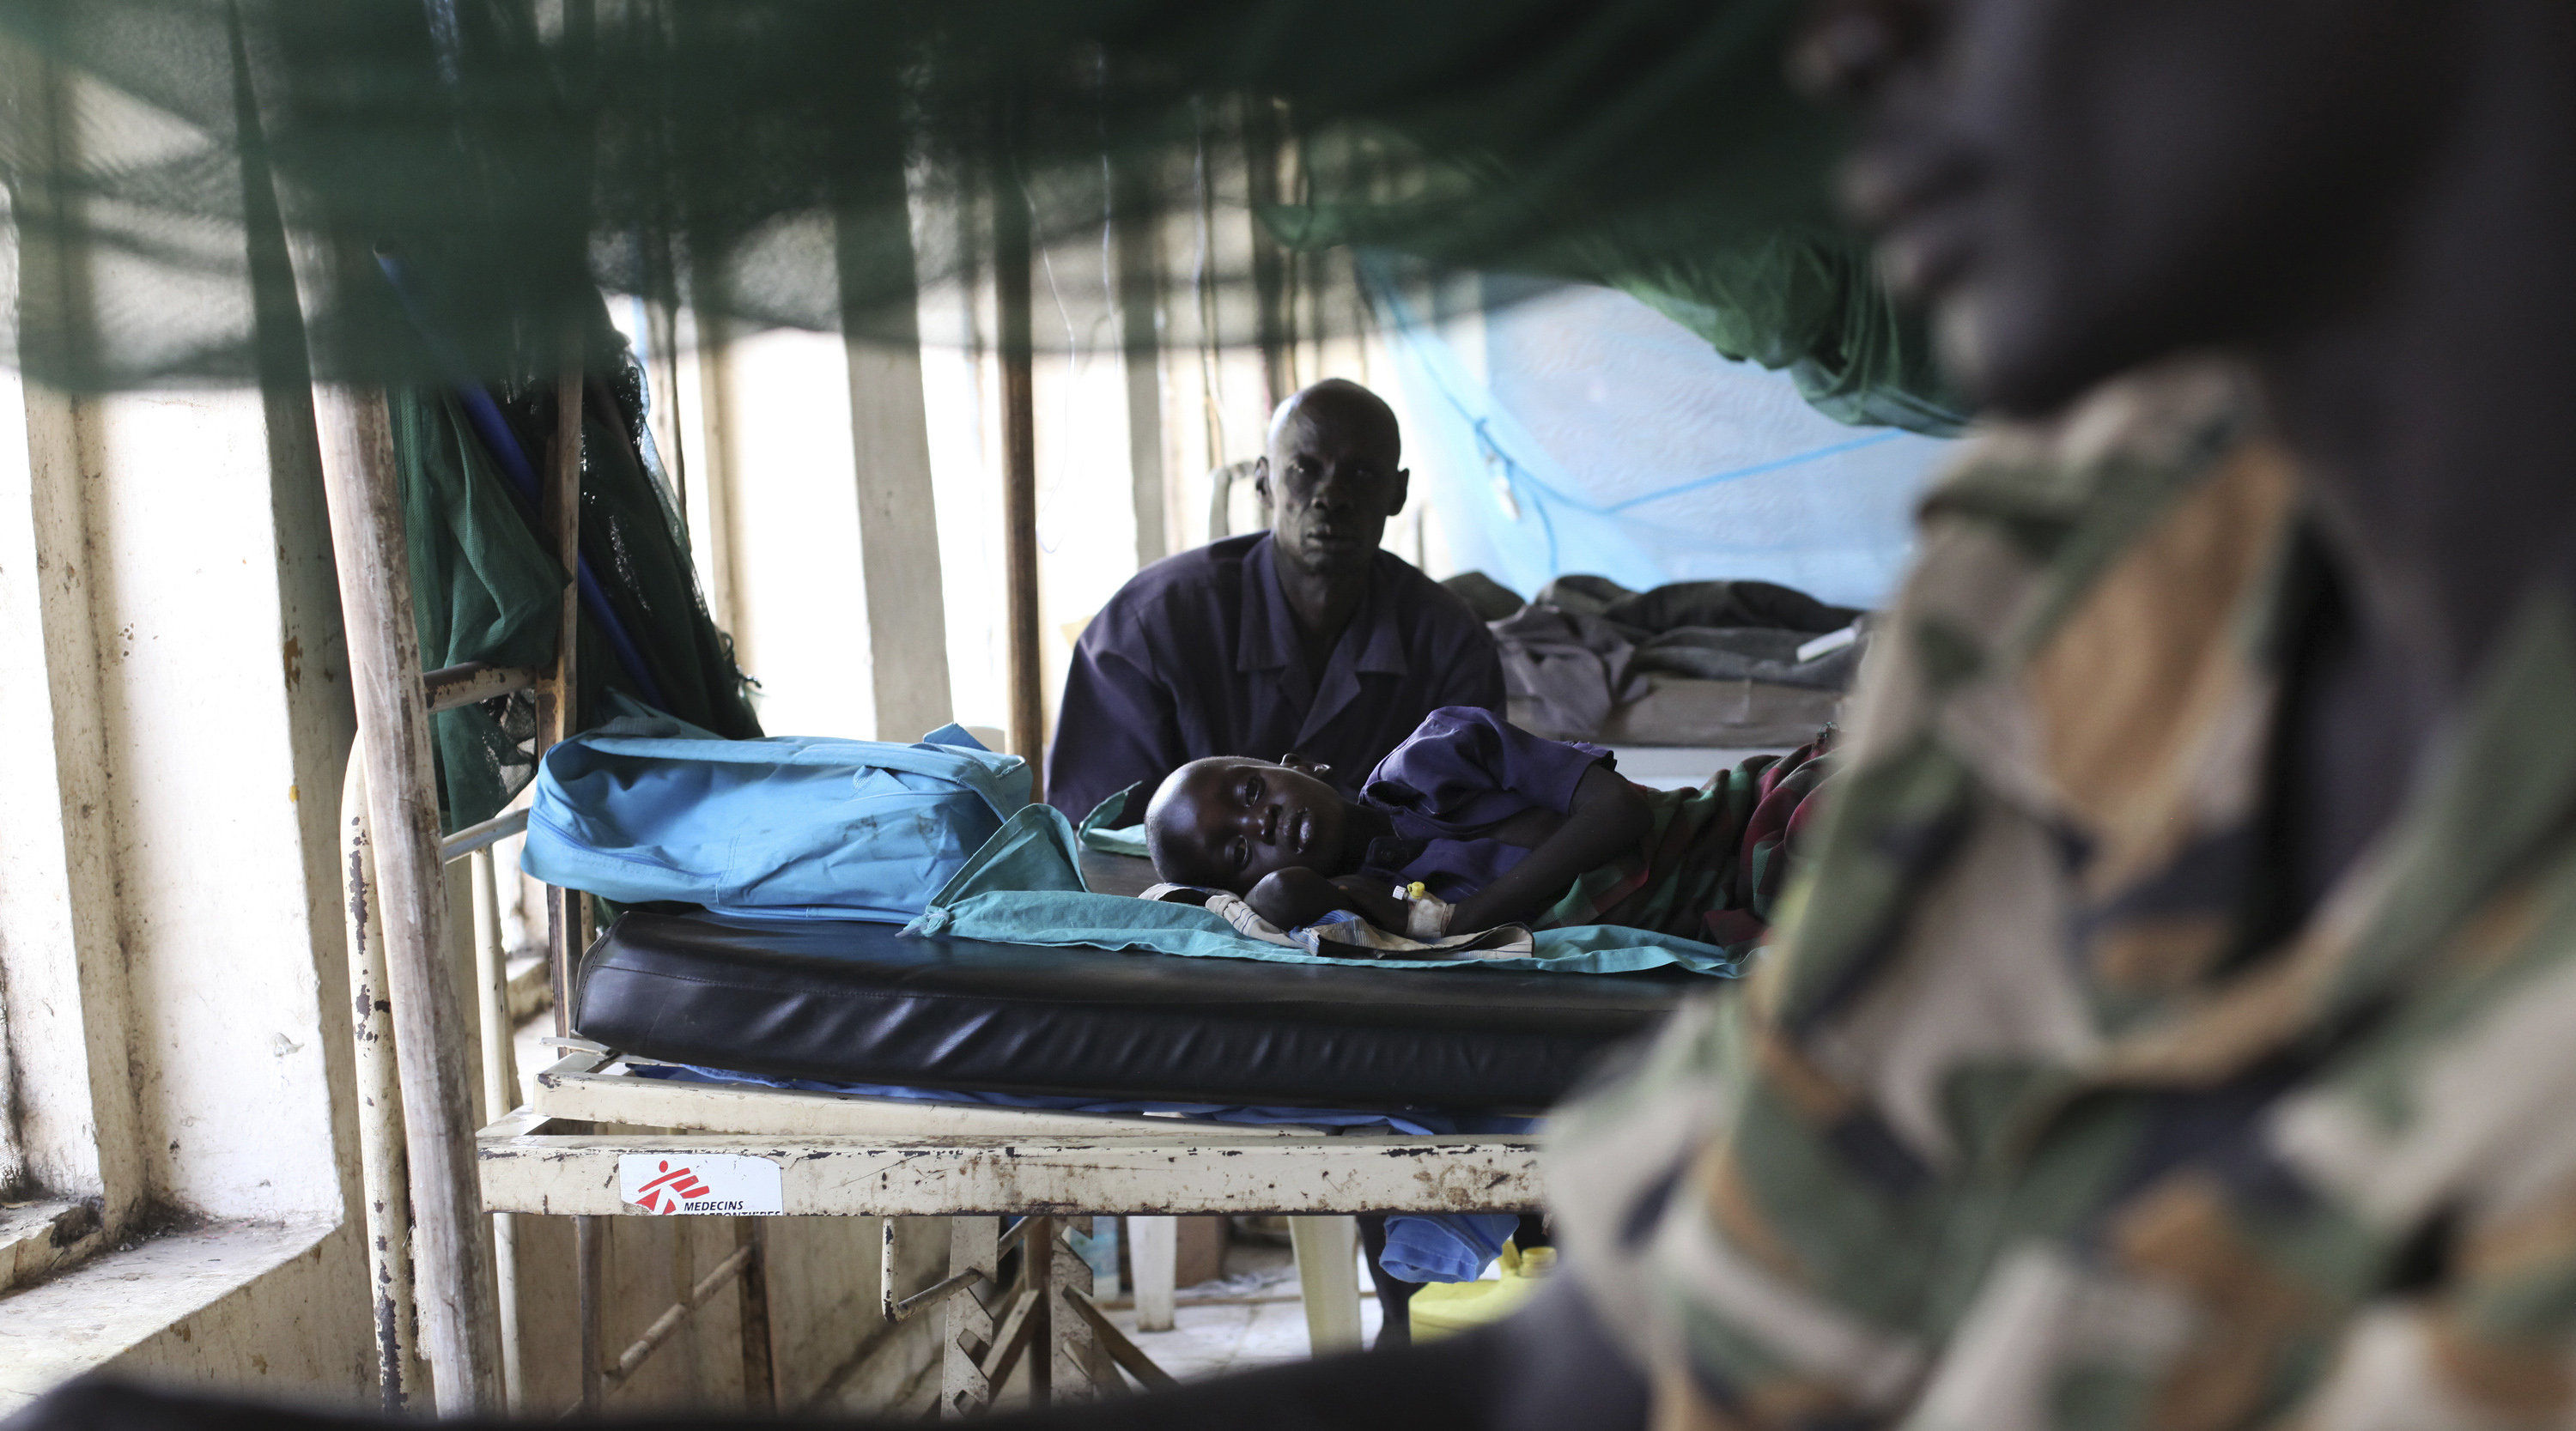 A child sick with malaria and from malnutrition lies on a bed in a hospital in Bor March 15, 2014.